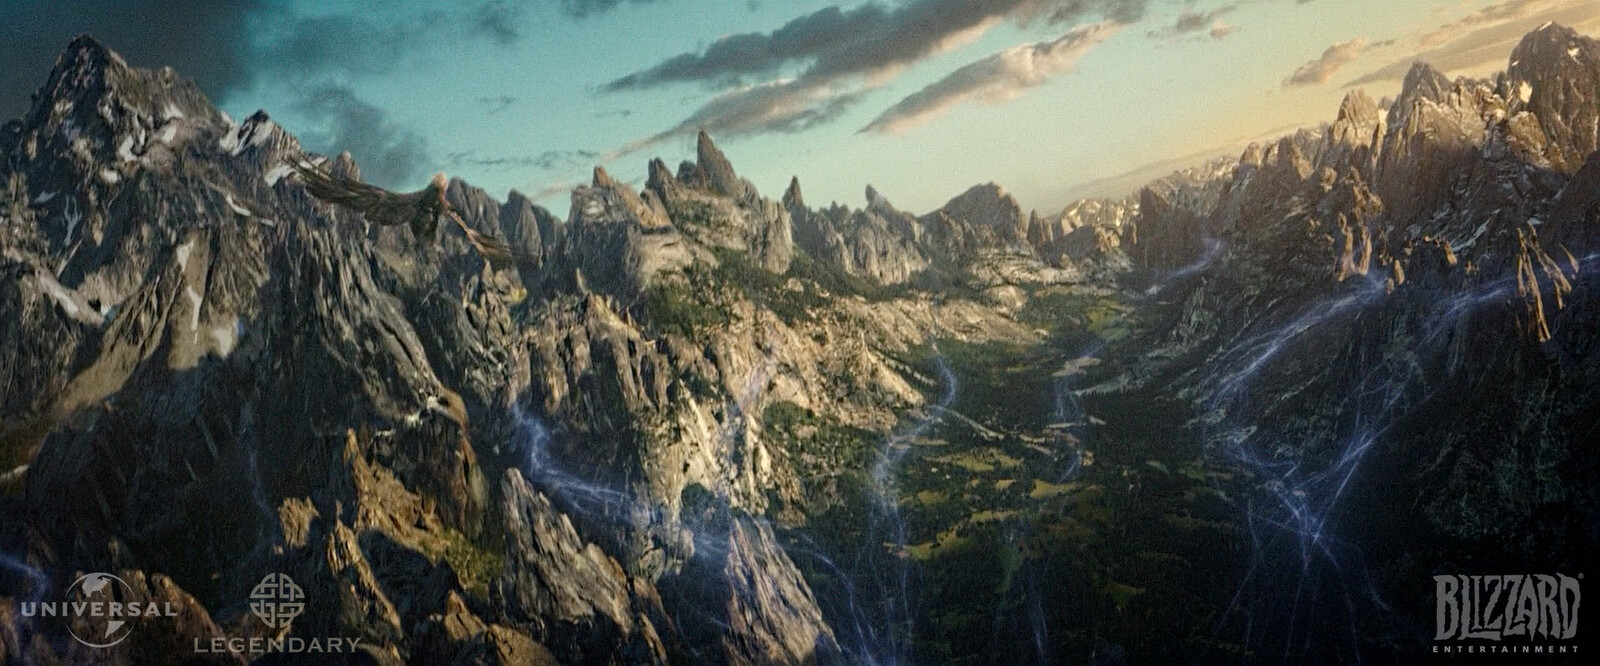 CG Environment Enhancements. A collaboration with other Generalists.